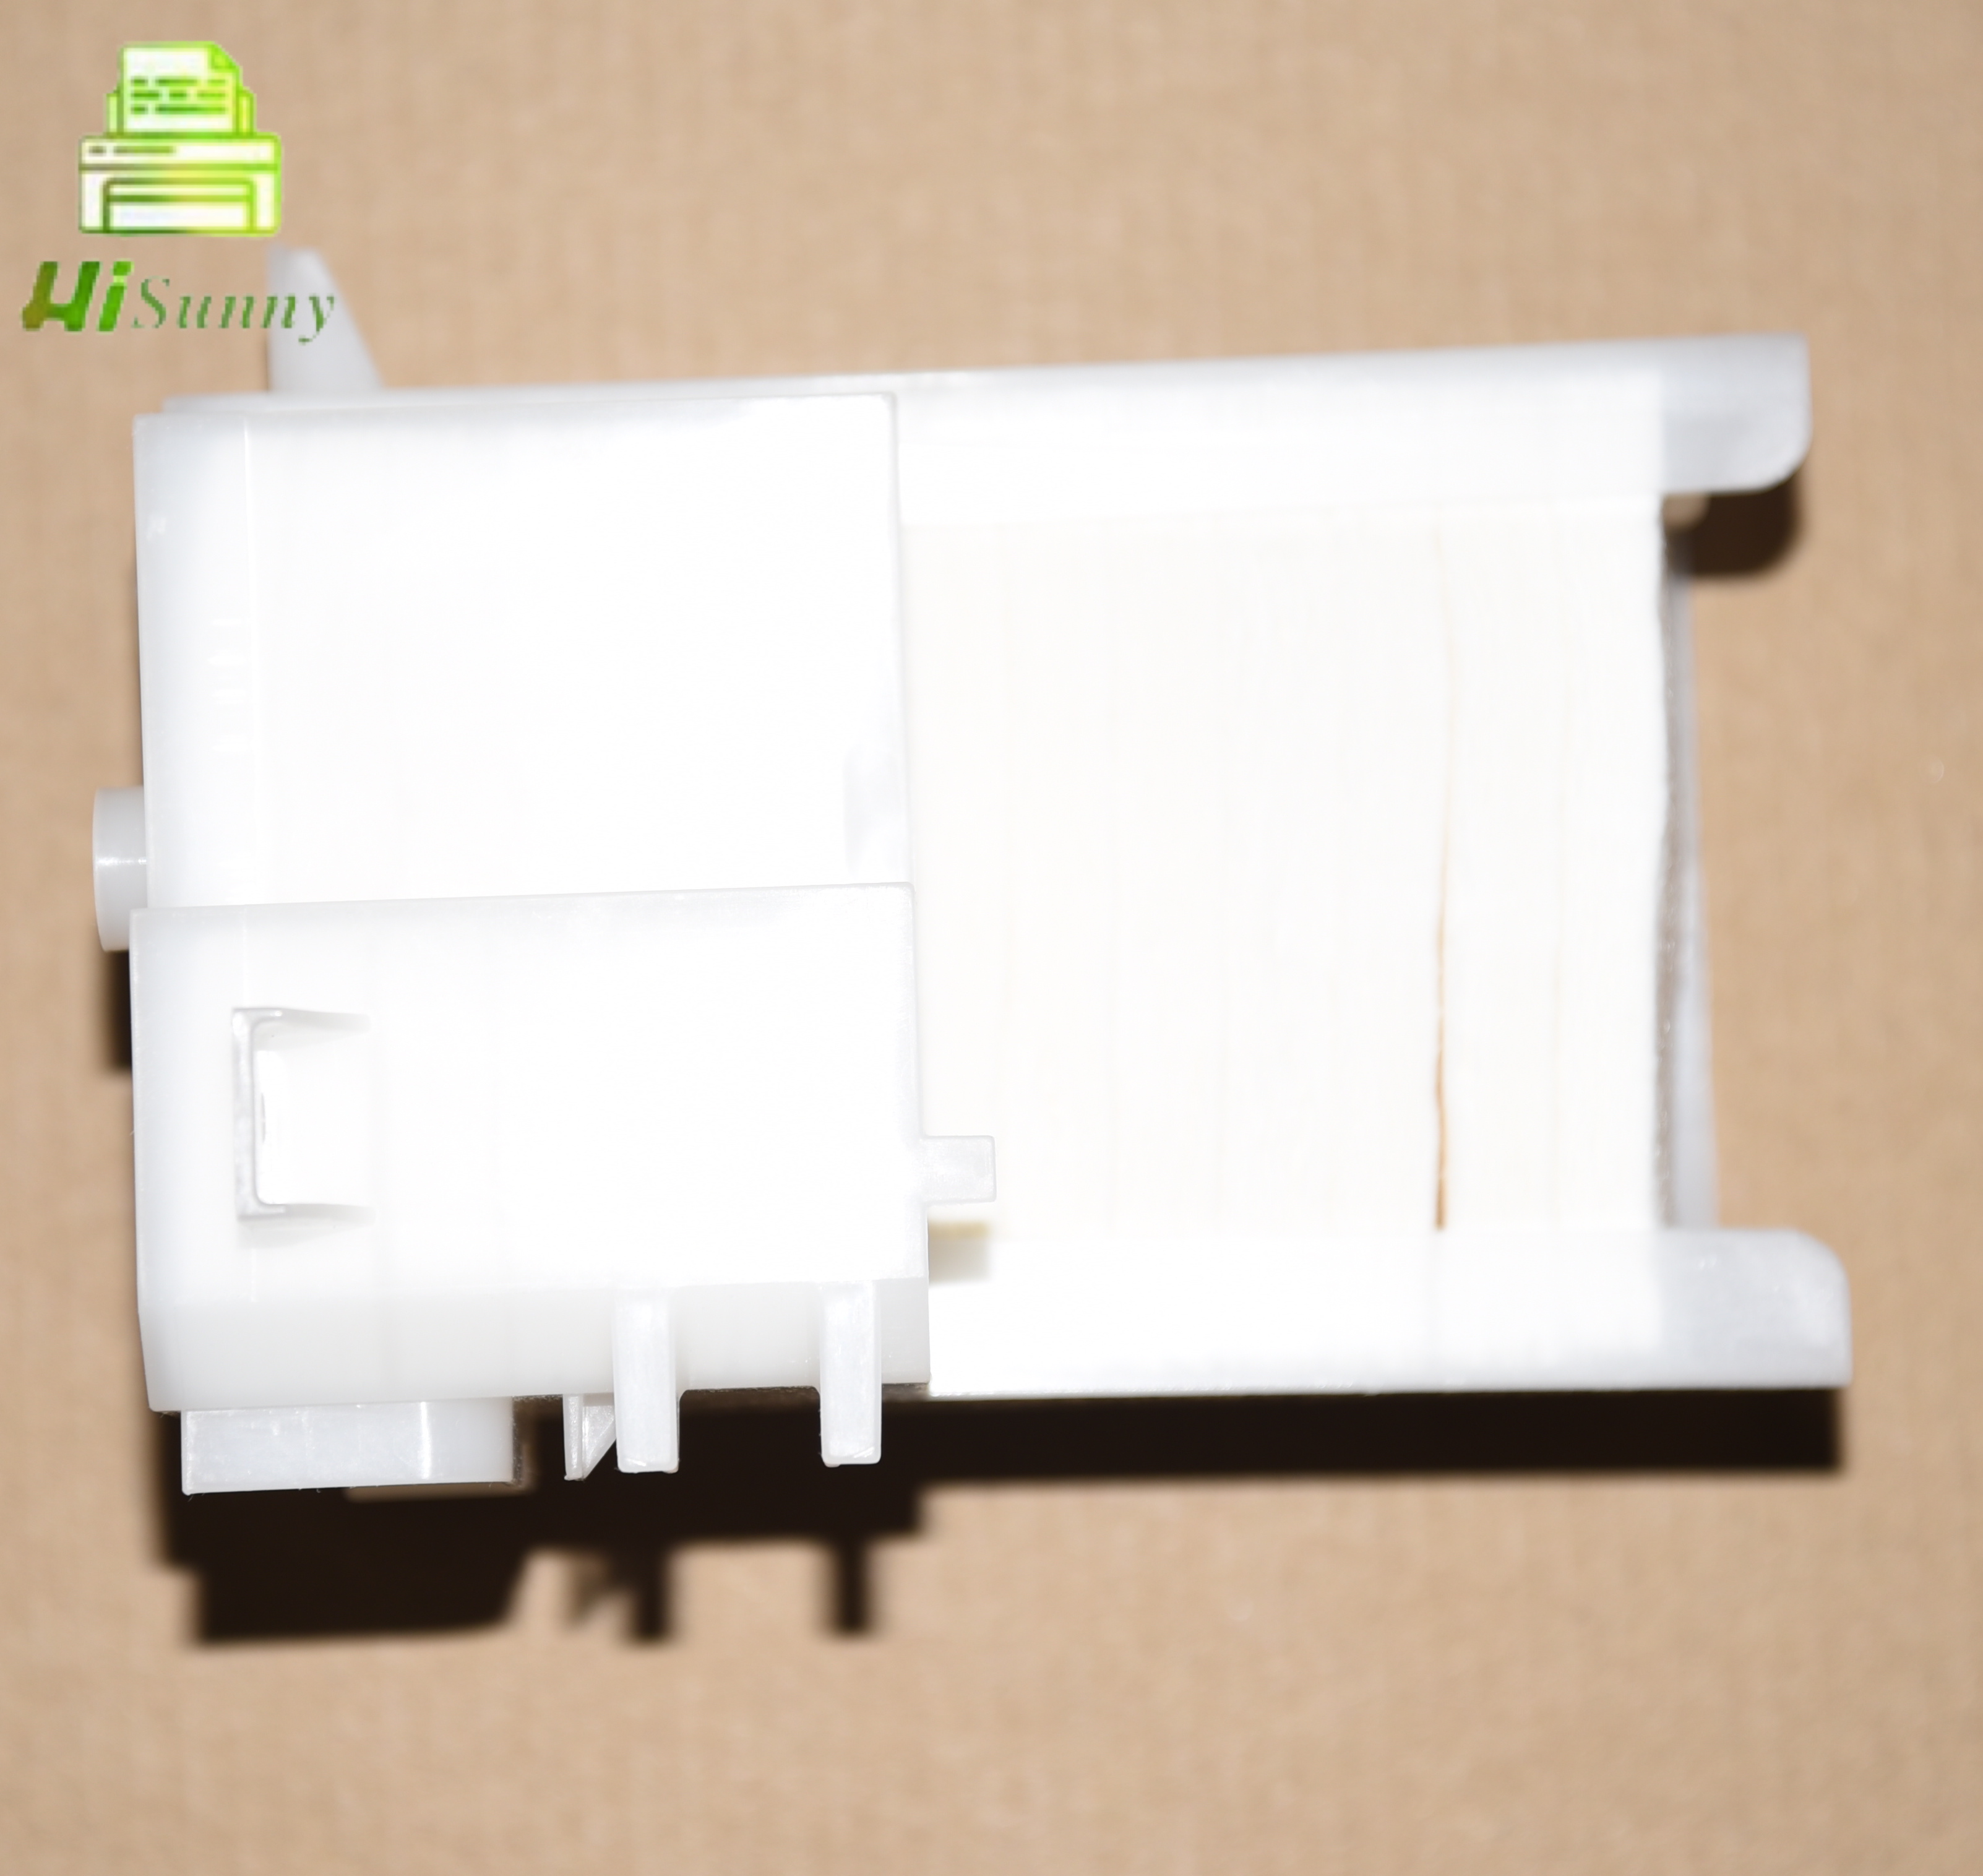 Free Shiping Oem Brand New Waste Ink Tank Pad Sponge For Epson R280 R290 Rx600 Rx610 Rx690 Px650 P50 P60 T50 T60 A50 L800 L801 Printer Supplies